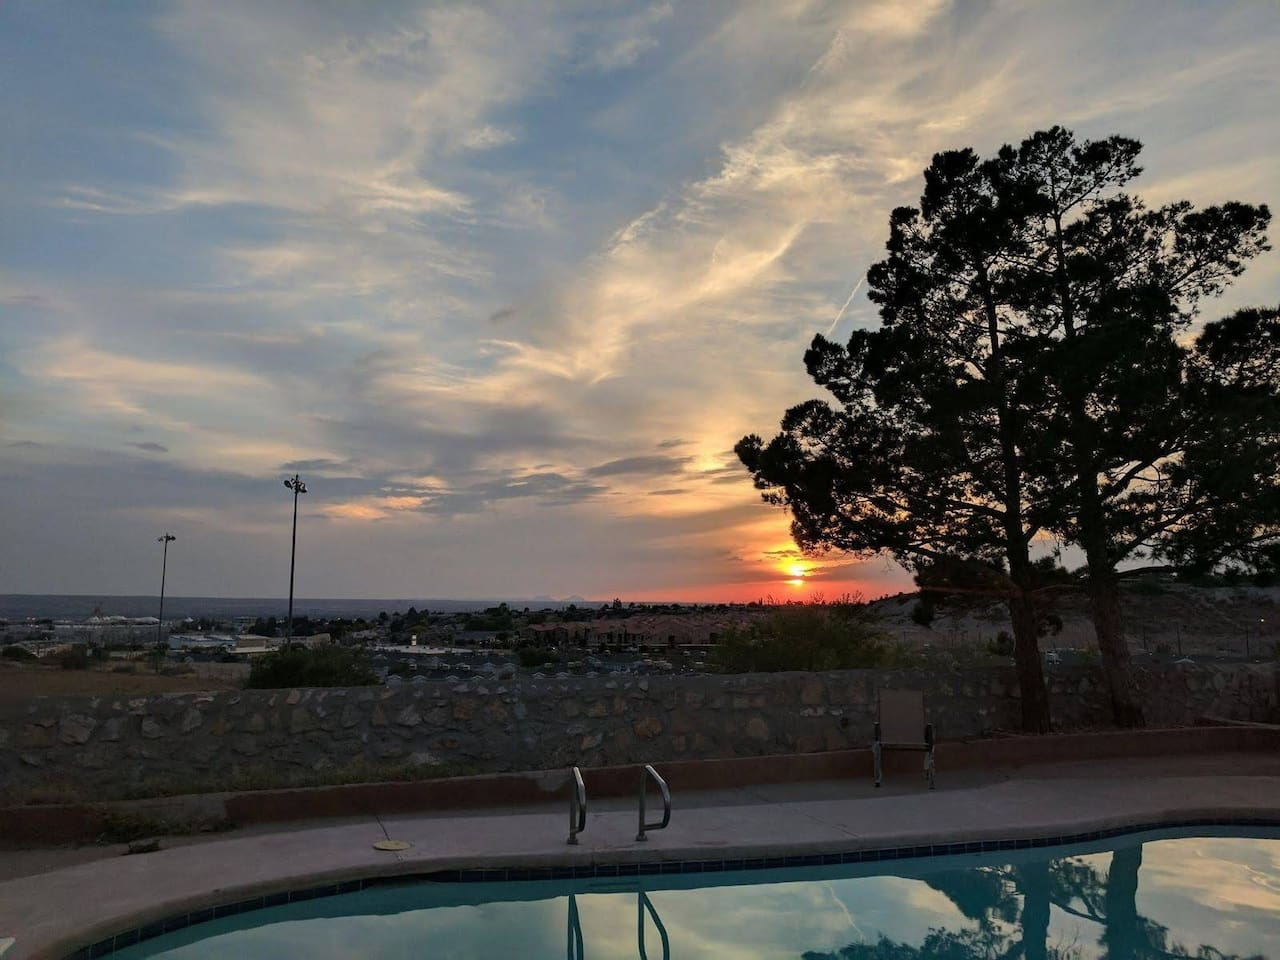 Sunset view from the patio